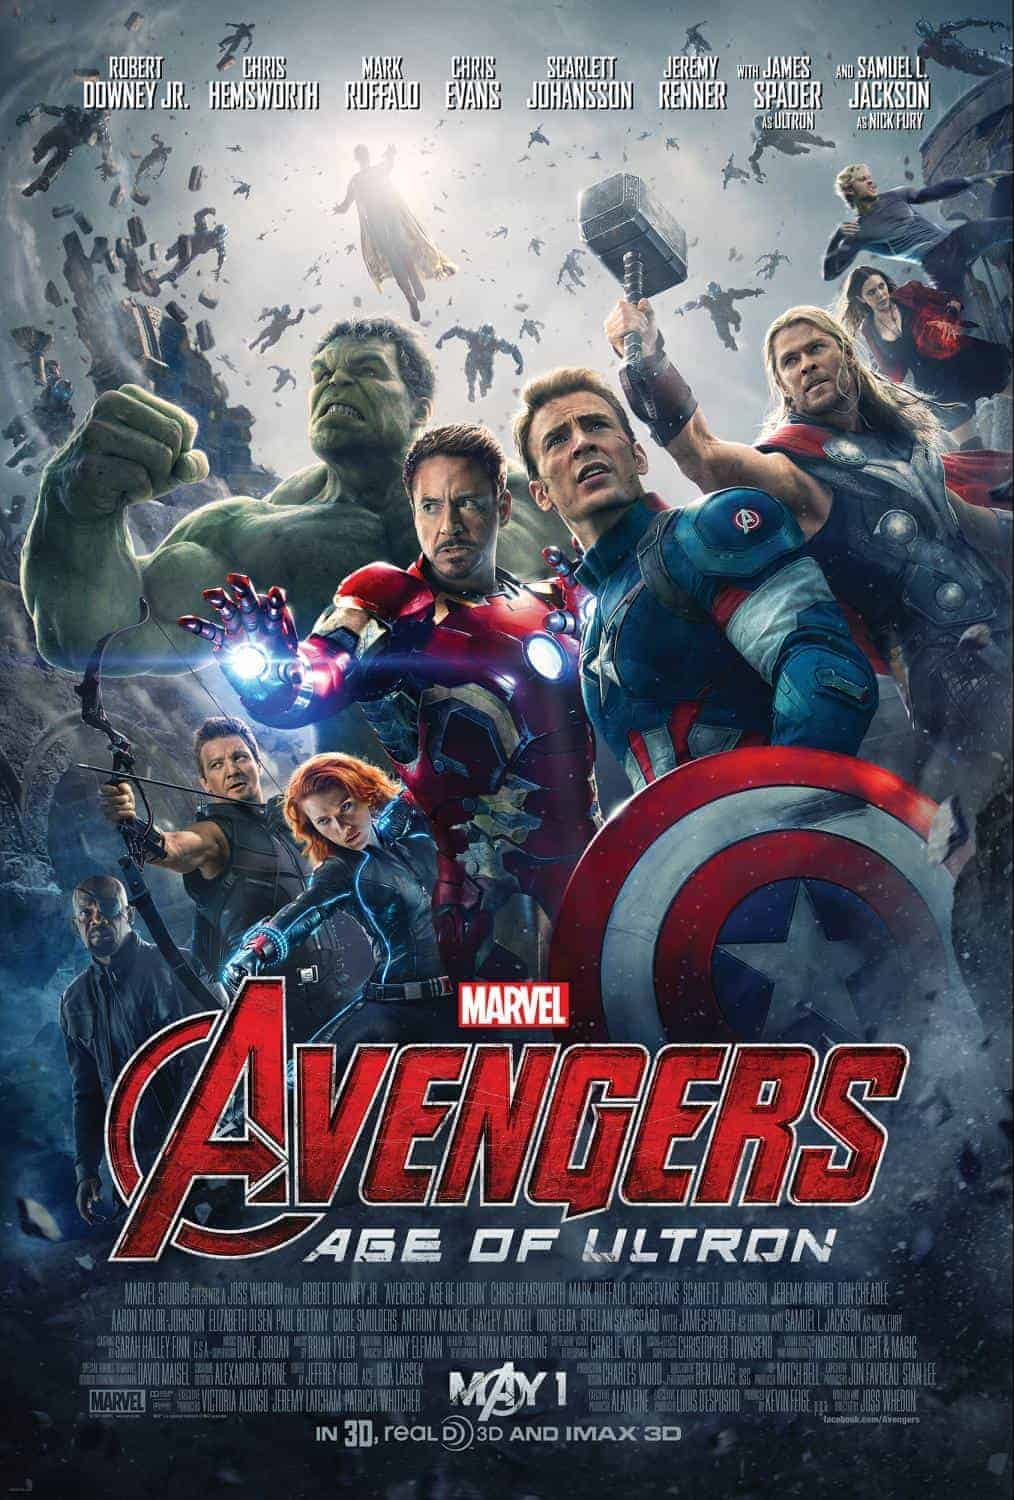 Avengers Age of Ultron Trailer 3